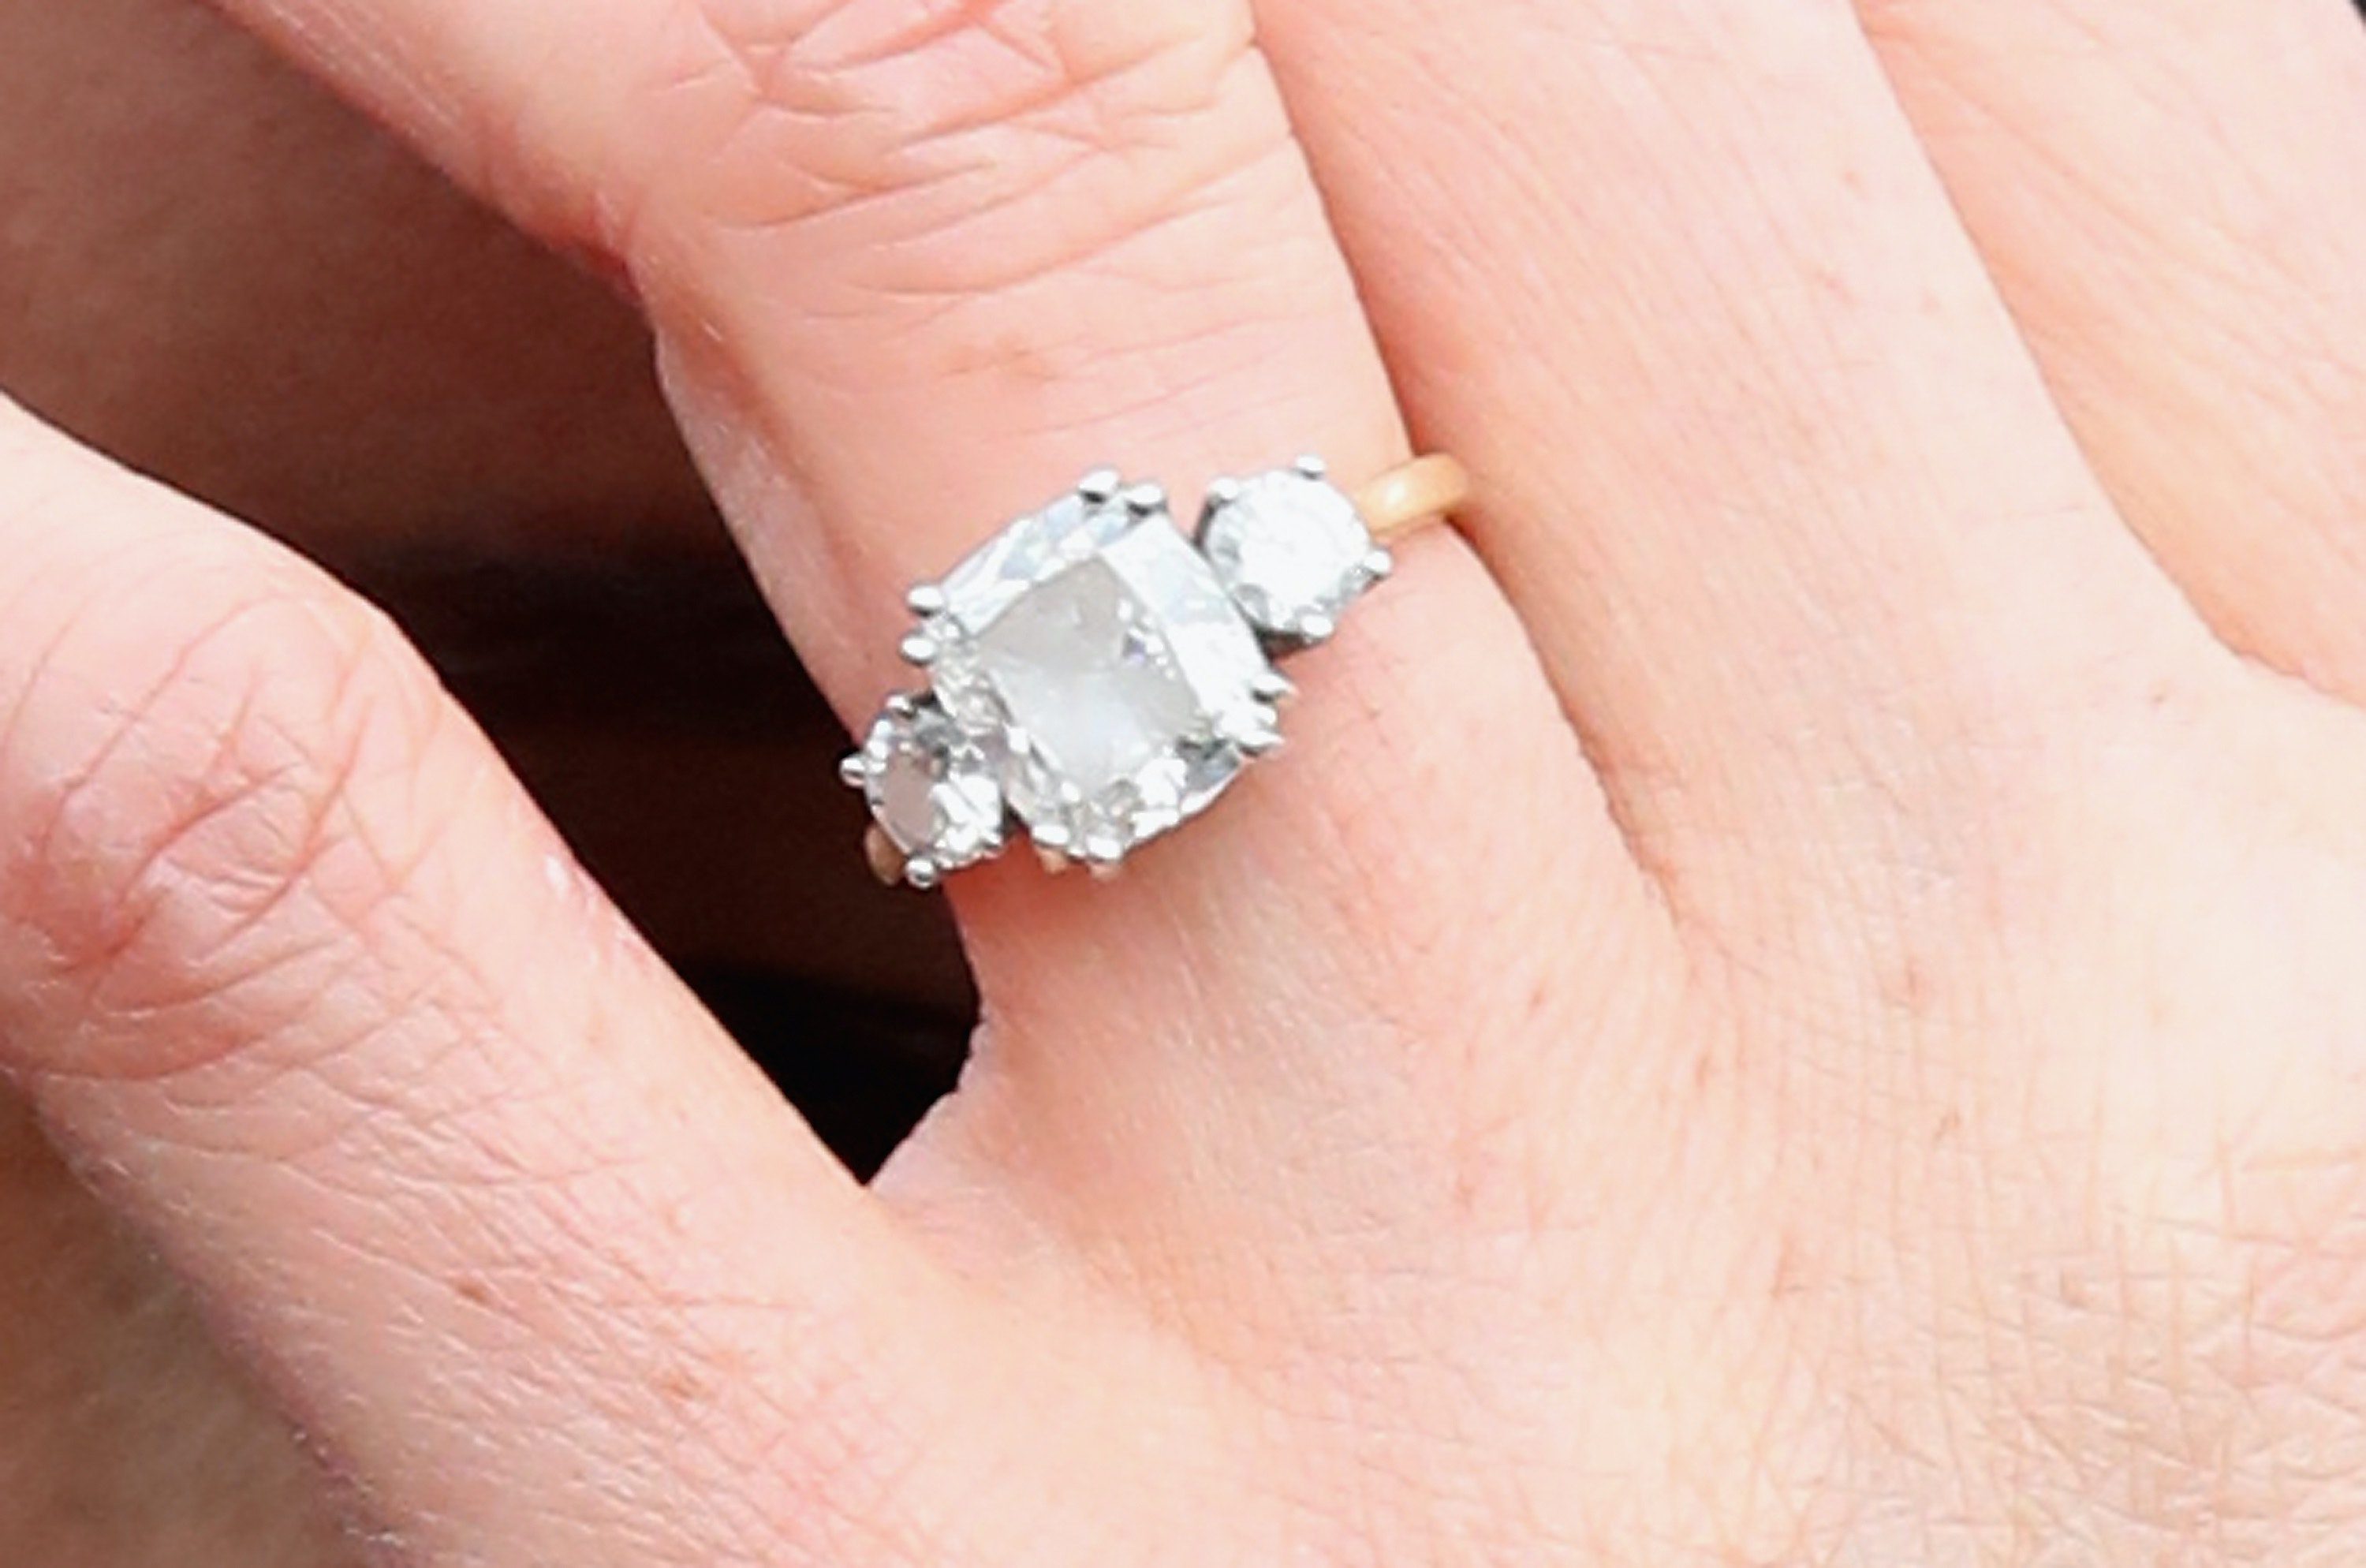 Meghan Markle Engagement Ring Carats - GANGBANGS